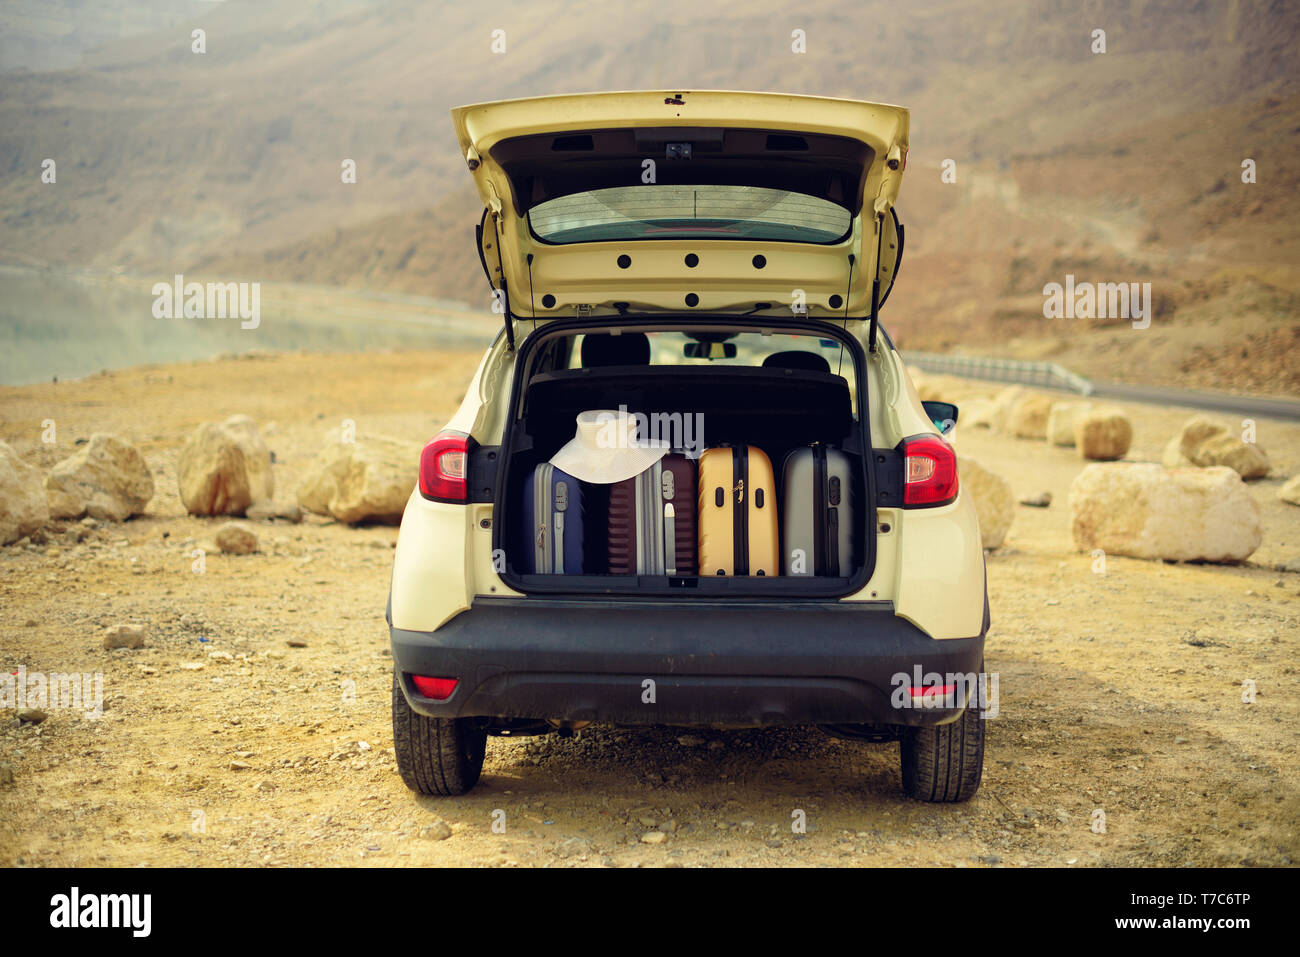 Suitcases and bags in car trunk. Summer holidays. Travel, adventure concept - Stock Image